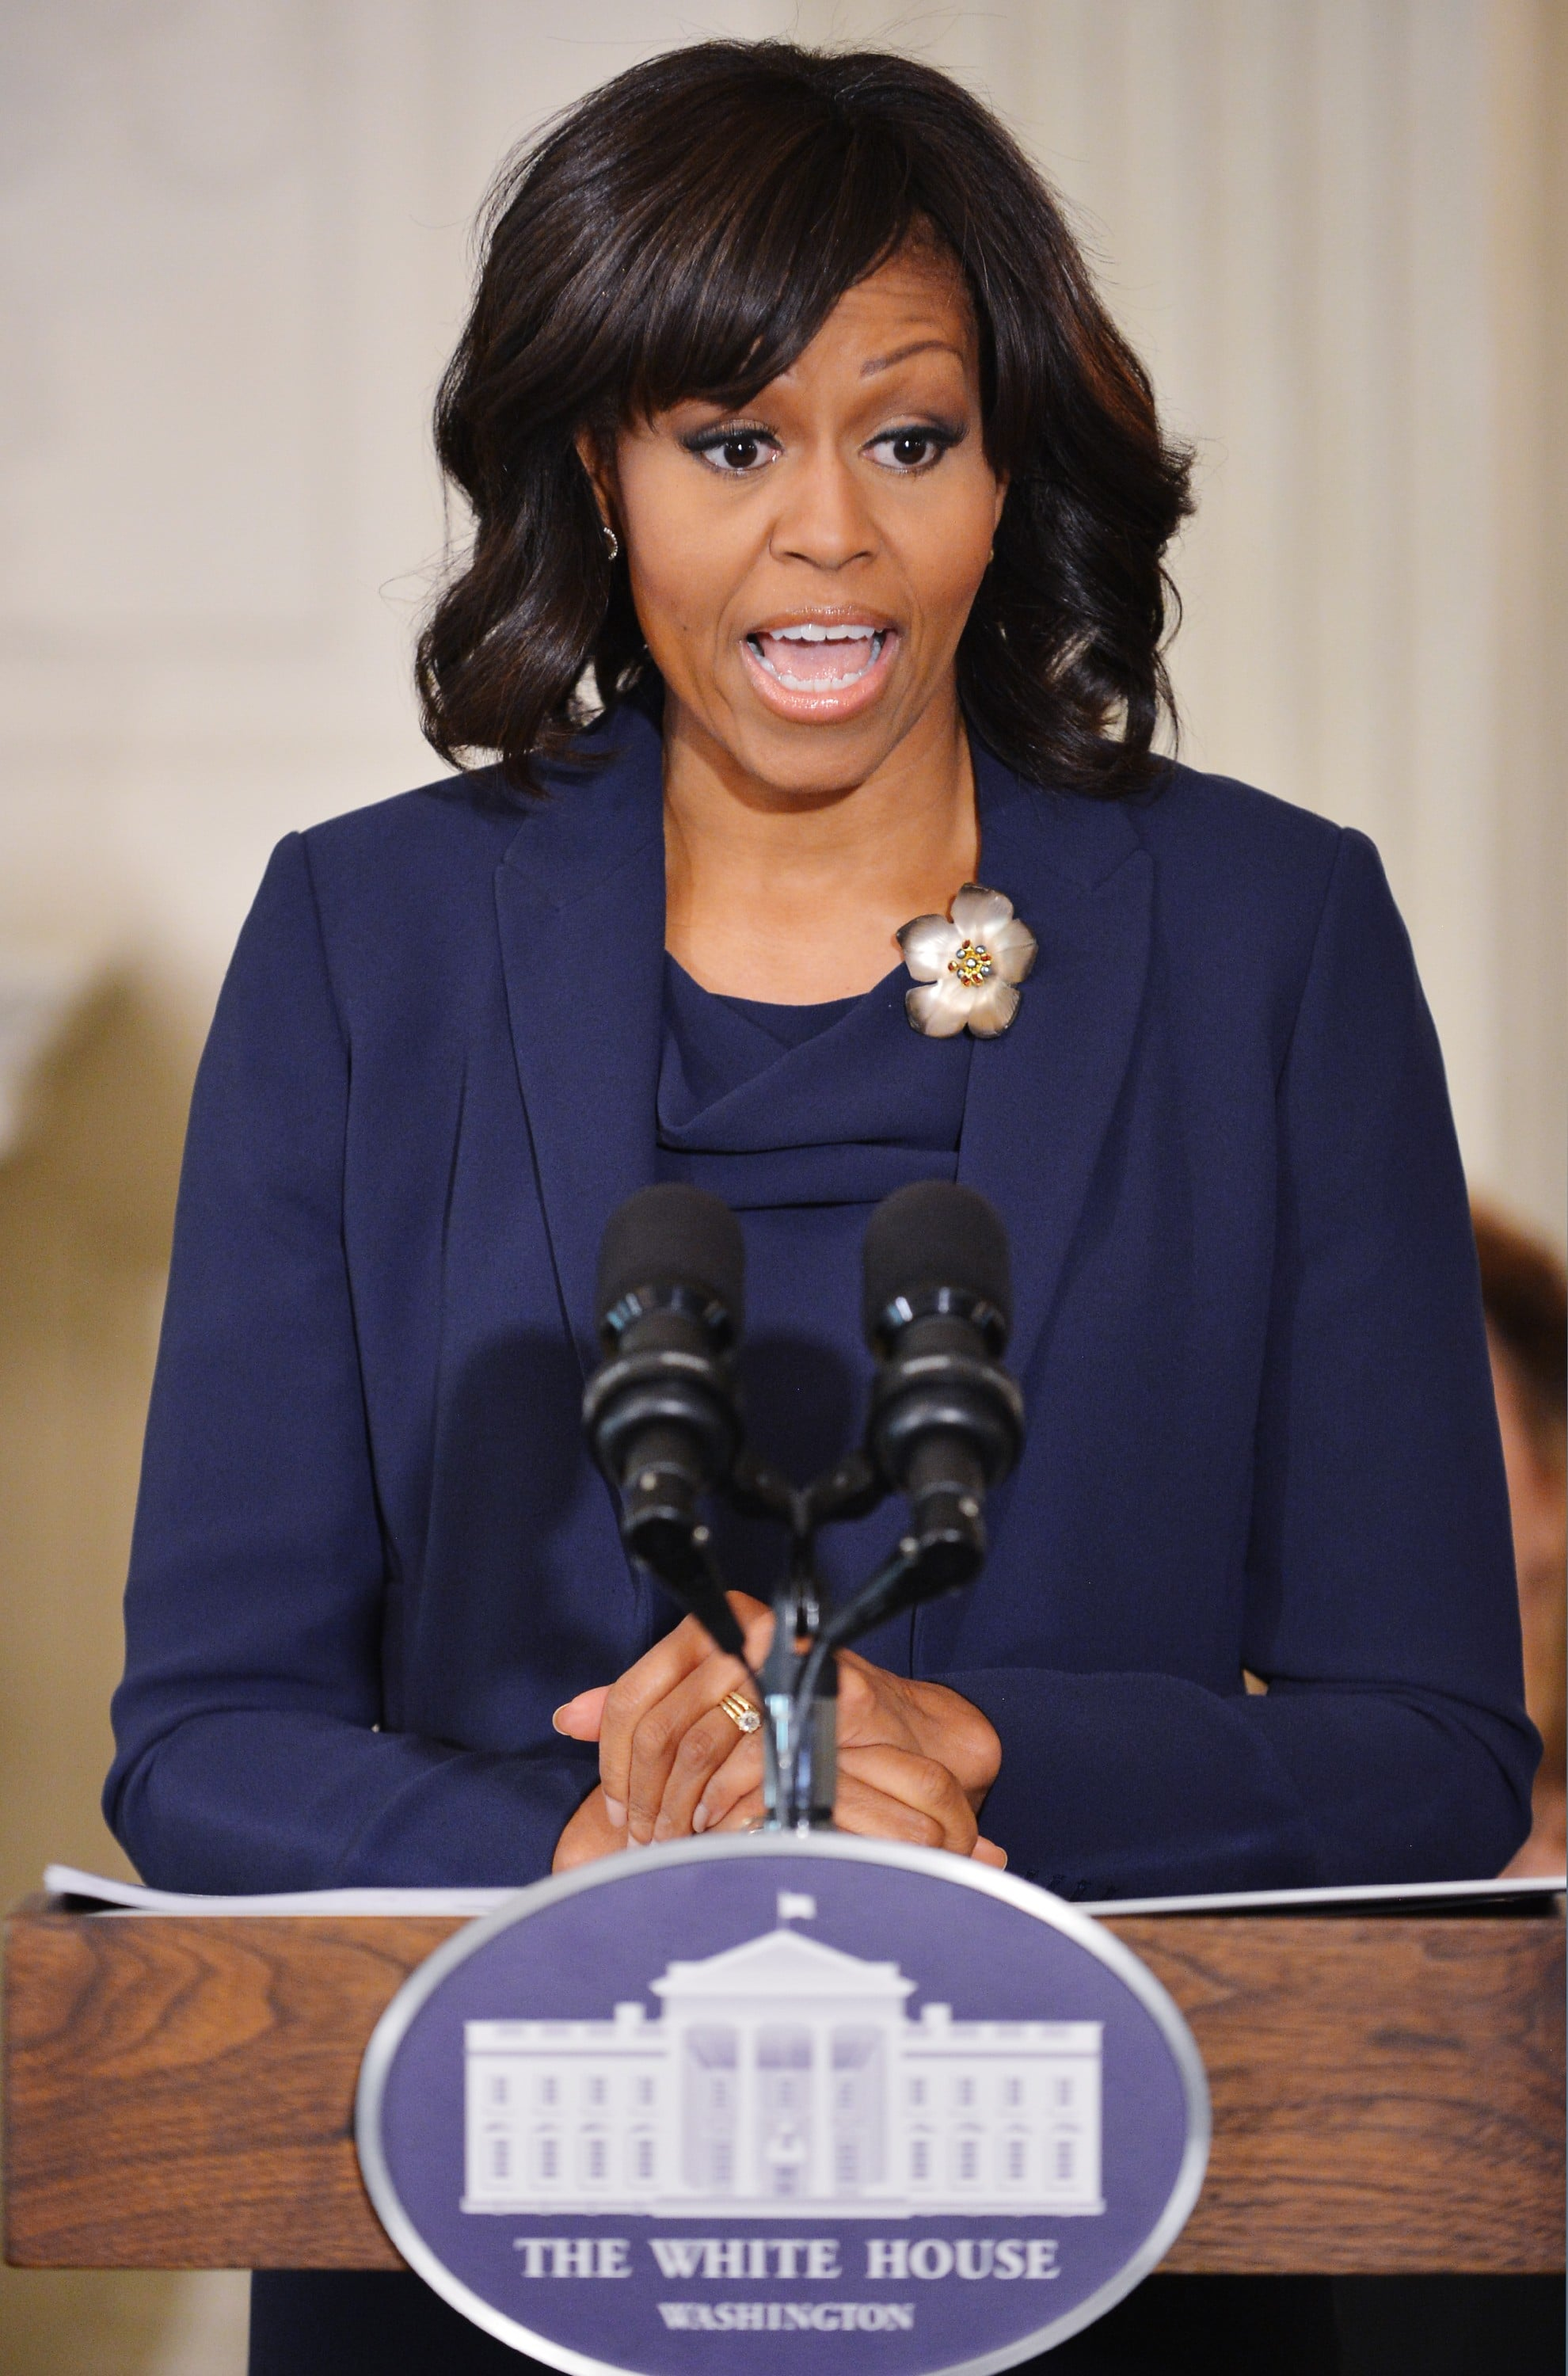 She accented a navy blue suit with an ultrafeminine floral brooch.